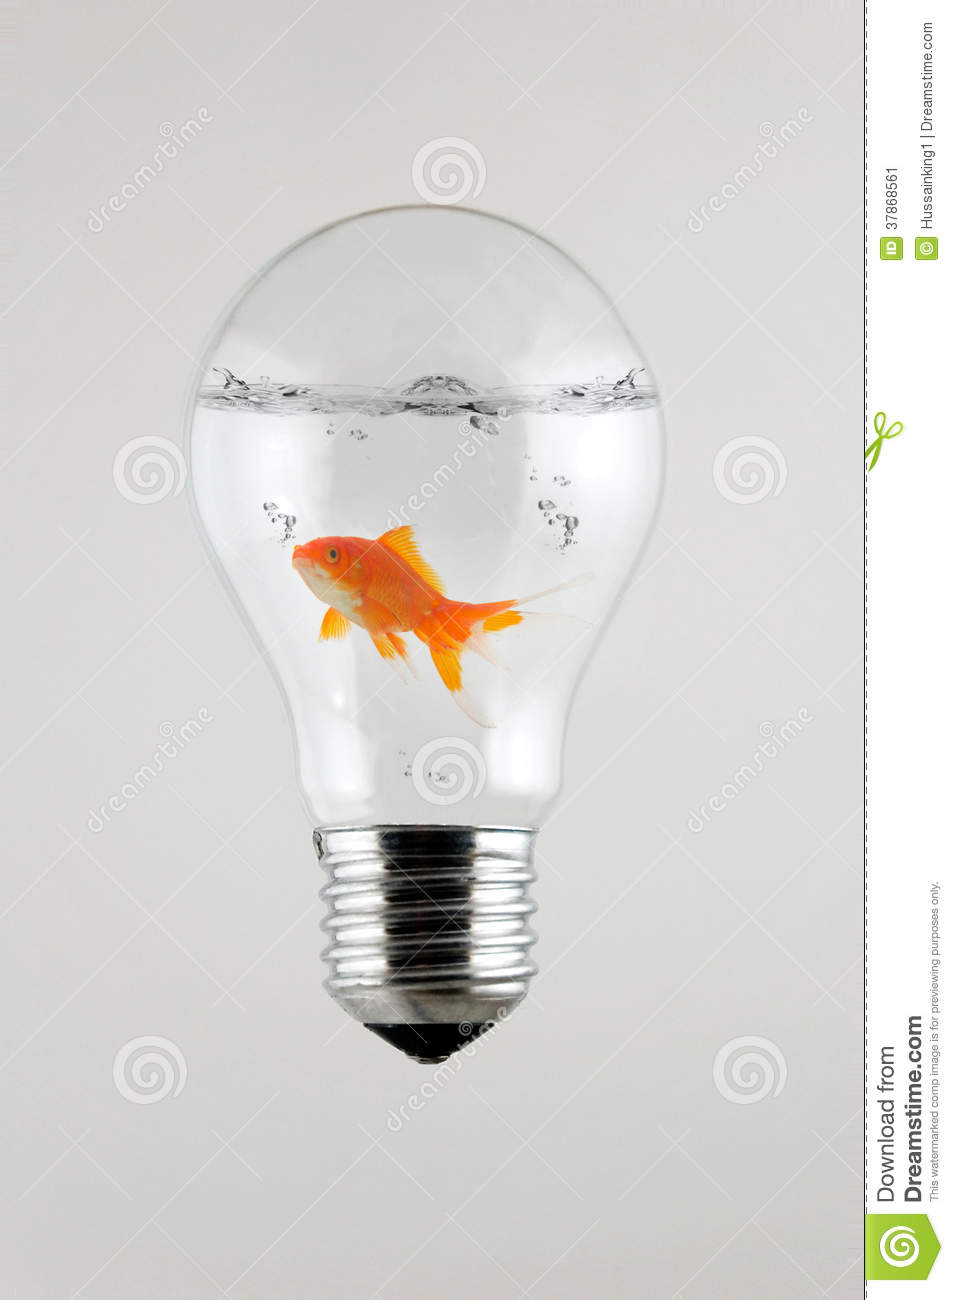 Fish Inside The Light Bulb Stock Image - Image: 37868561